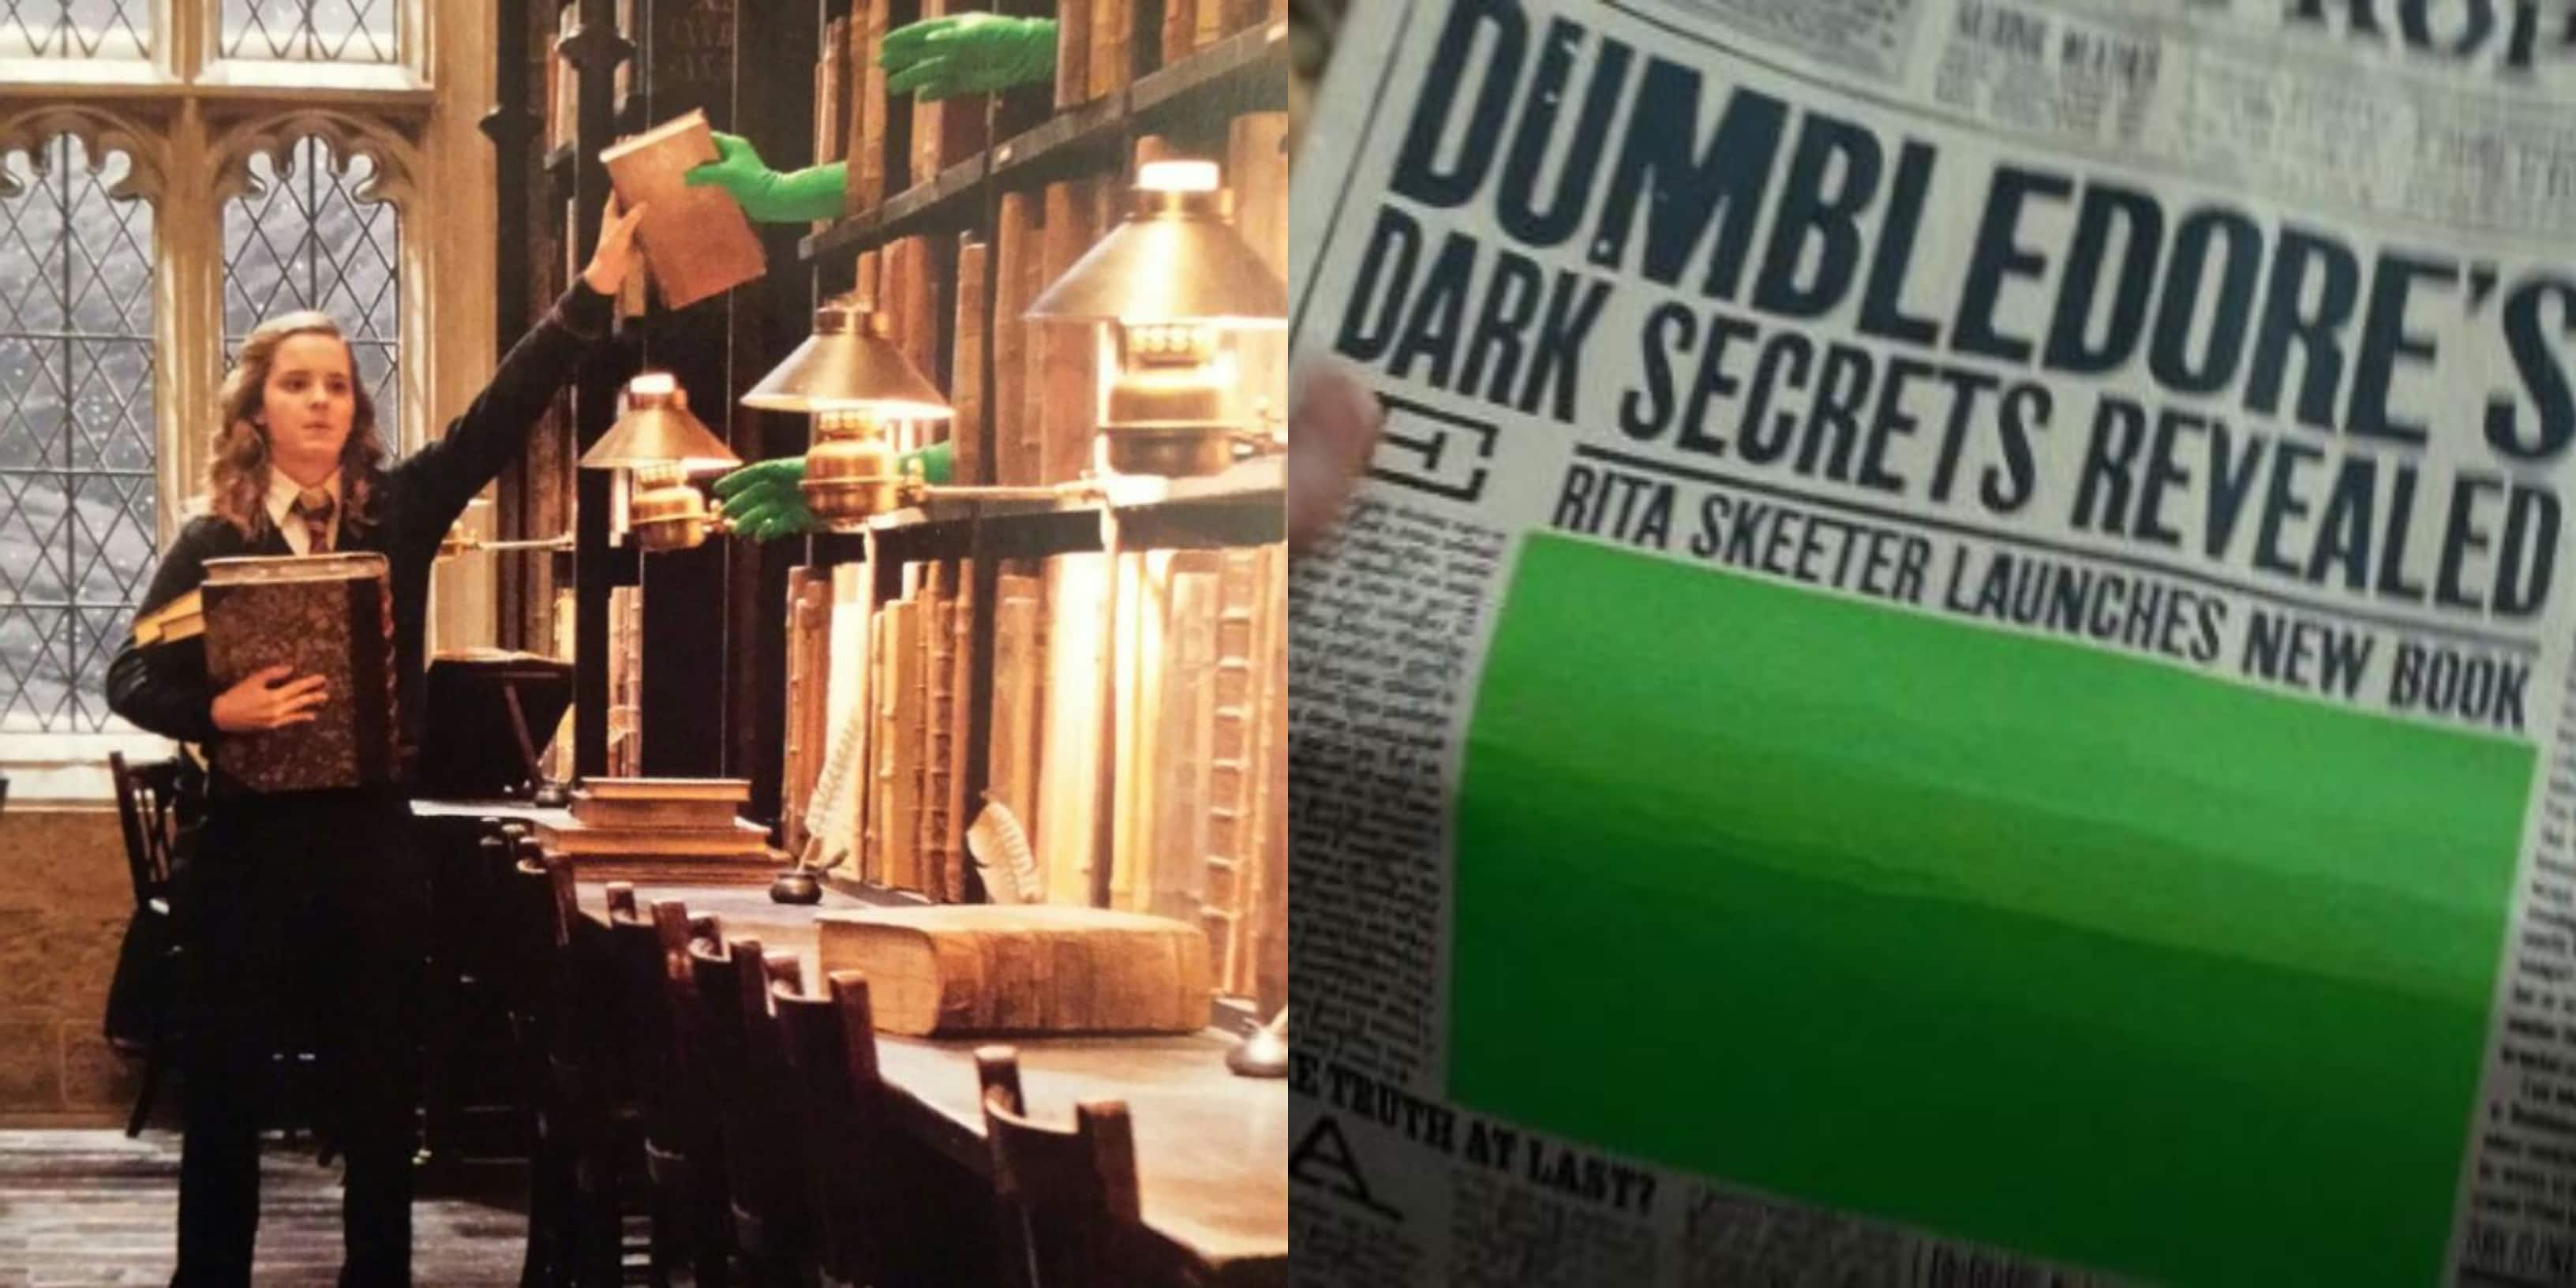 These Behind The Scenes Photos From The Harry Potter Films Show You How The Magic At Hogwarts Really Happened